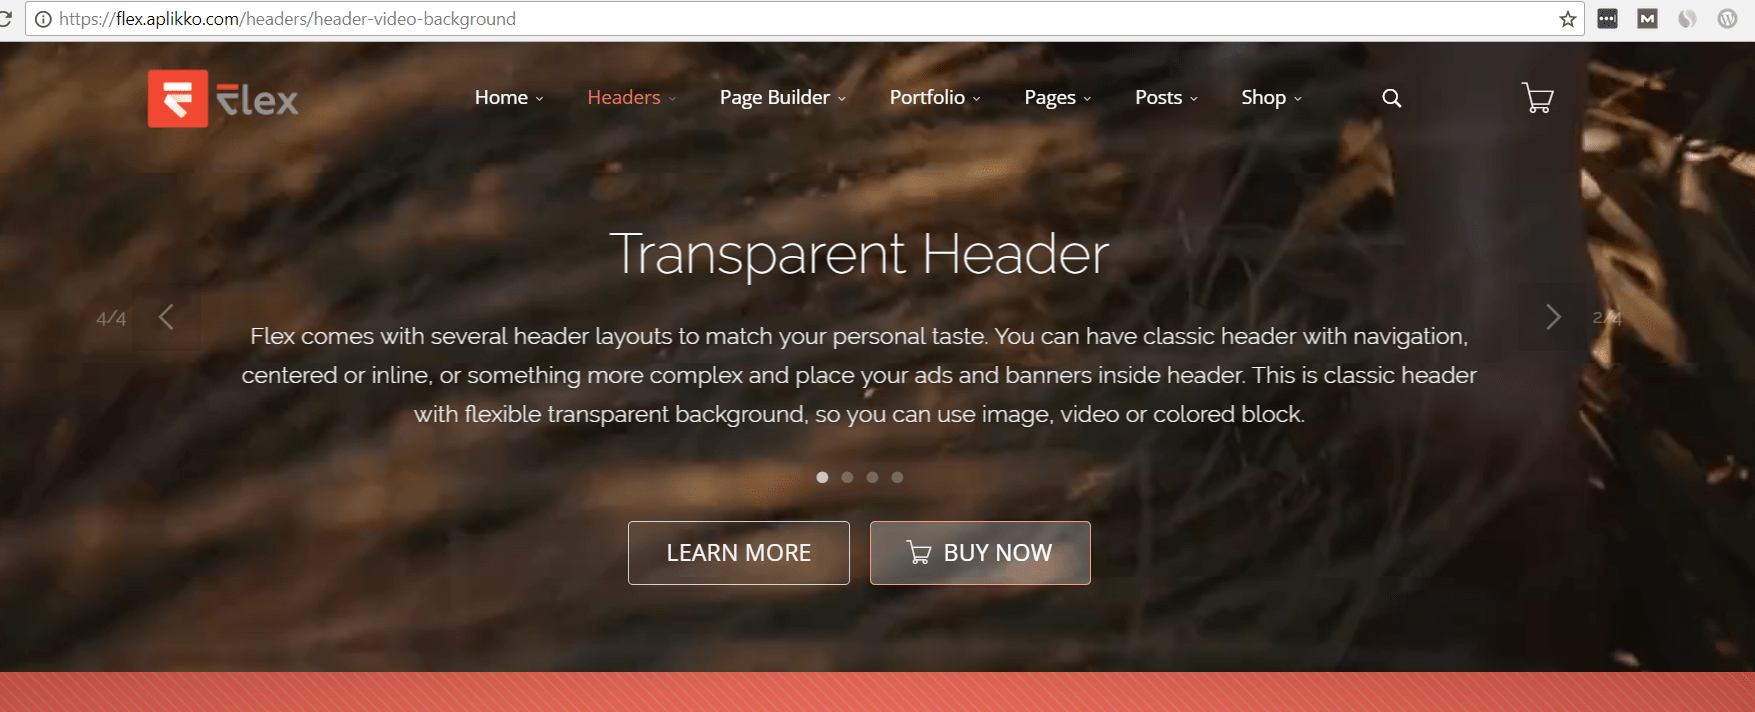 20+ Beautiful Website Headers and Why They Work So Well